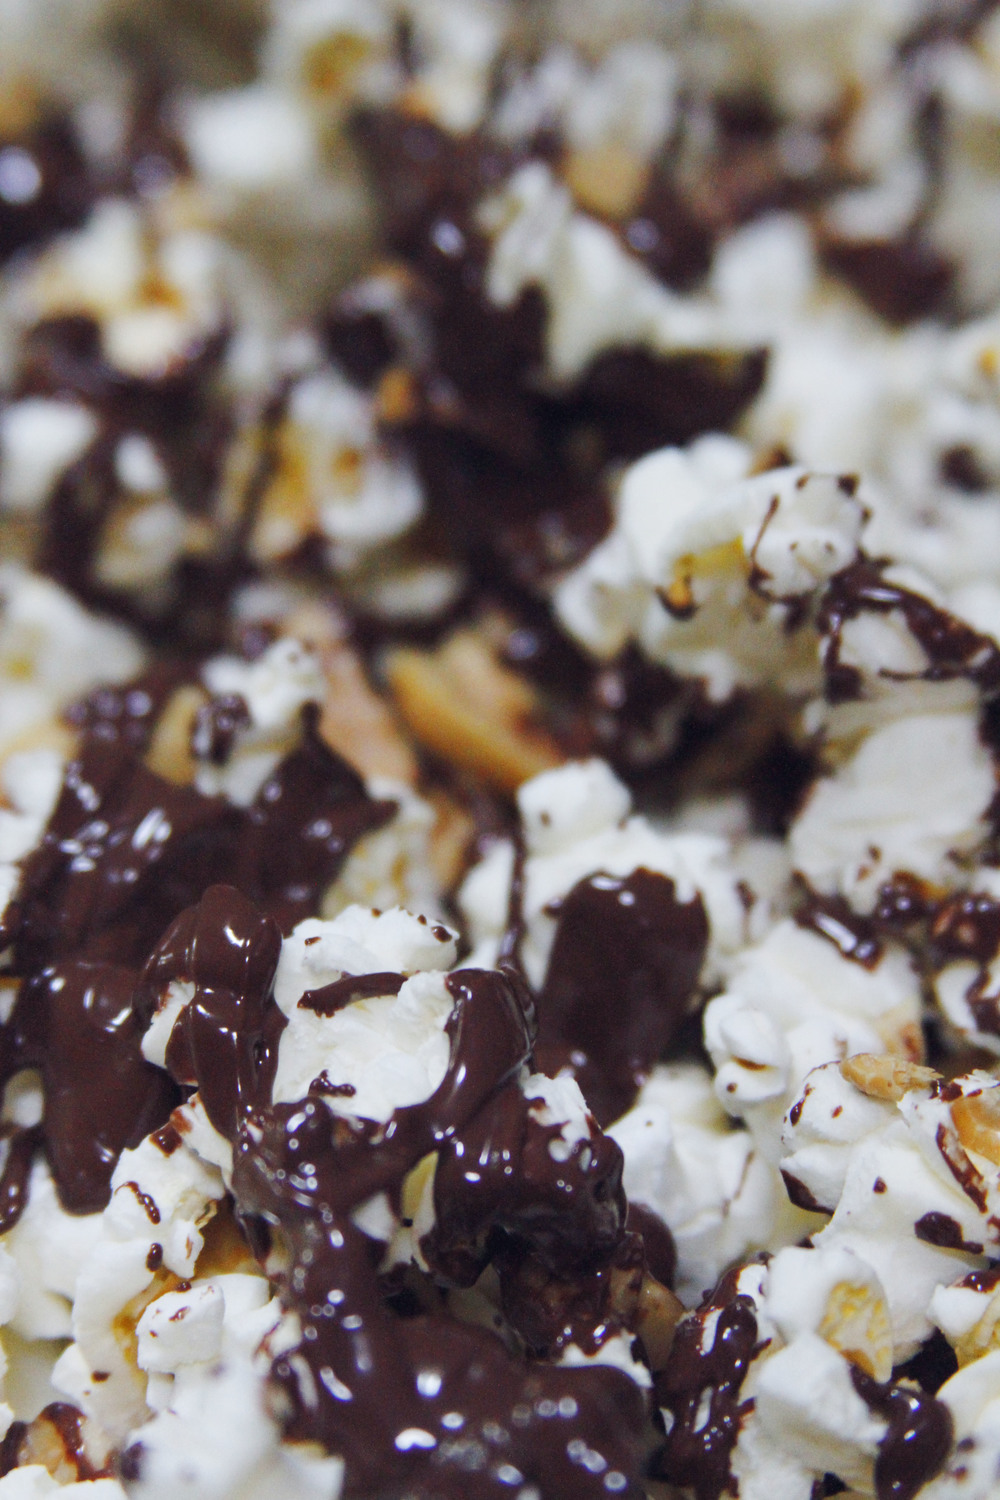 peanut chocolate popcorn // print (em) shop